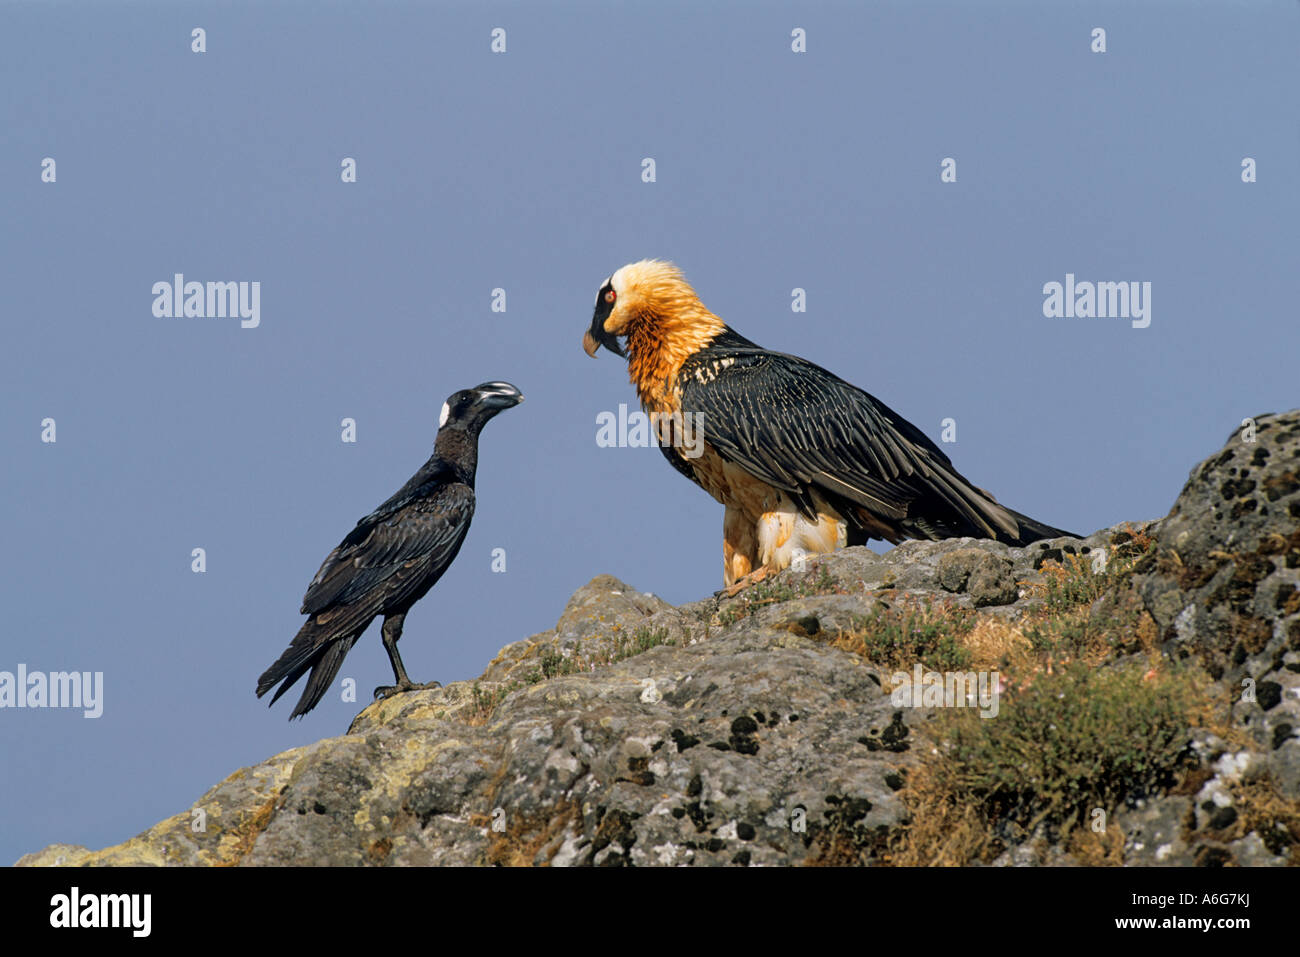 Bearded Vulture and Thick-billed Raven staring each other, (Gypaetus barbatus), (Corvus crassirostris) Semien Mountain - Stock Image